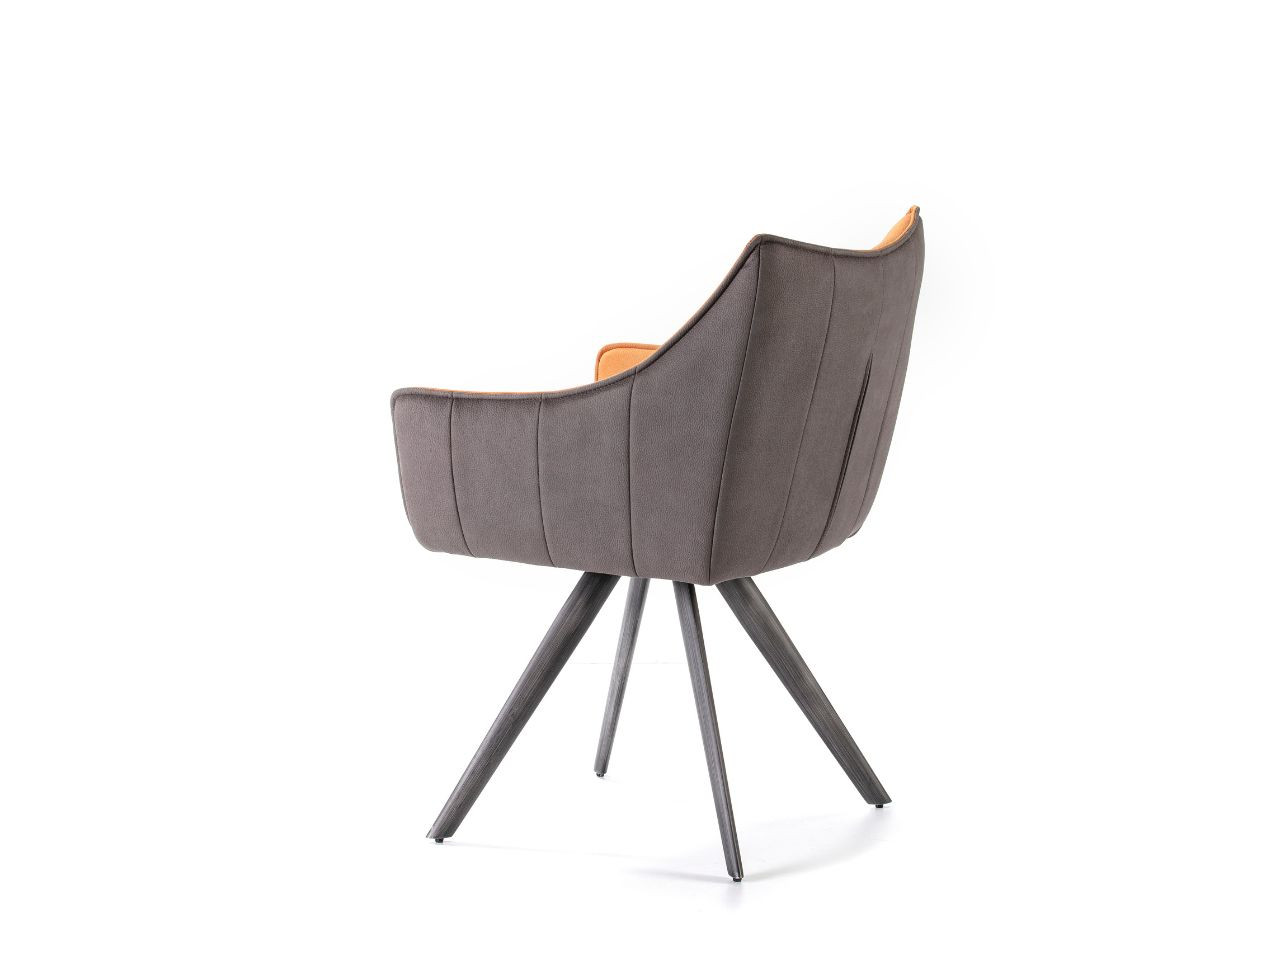 Ikea sofa 3 plazas great three seater sofa elegant - Medidas sofa 3 plazas ...